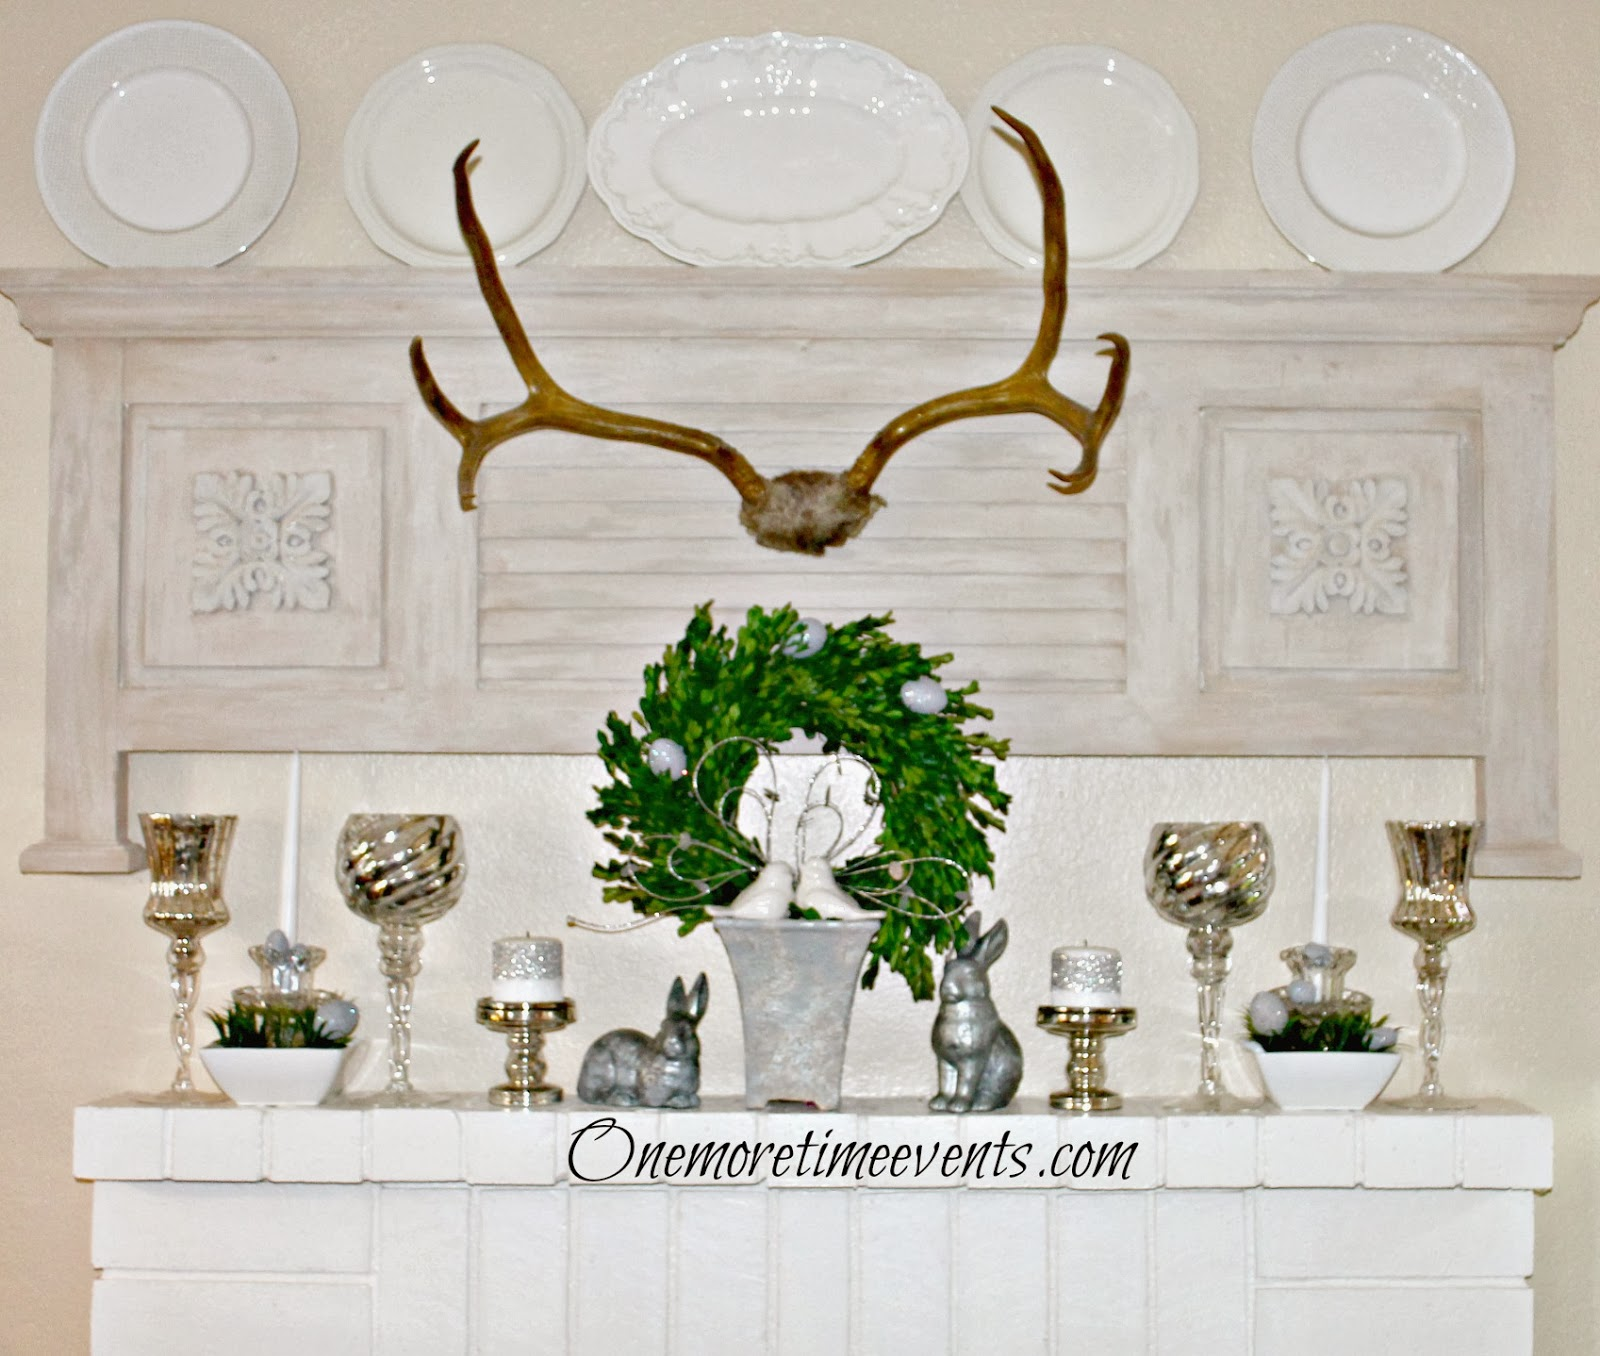 Spring Mantel and Fireplace at One More Time Events.com